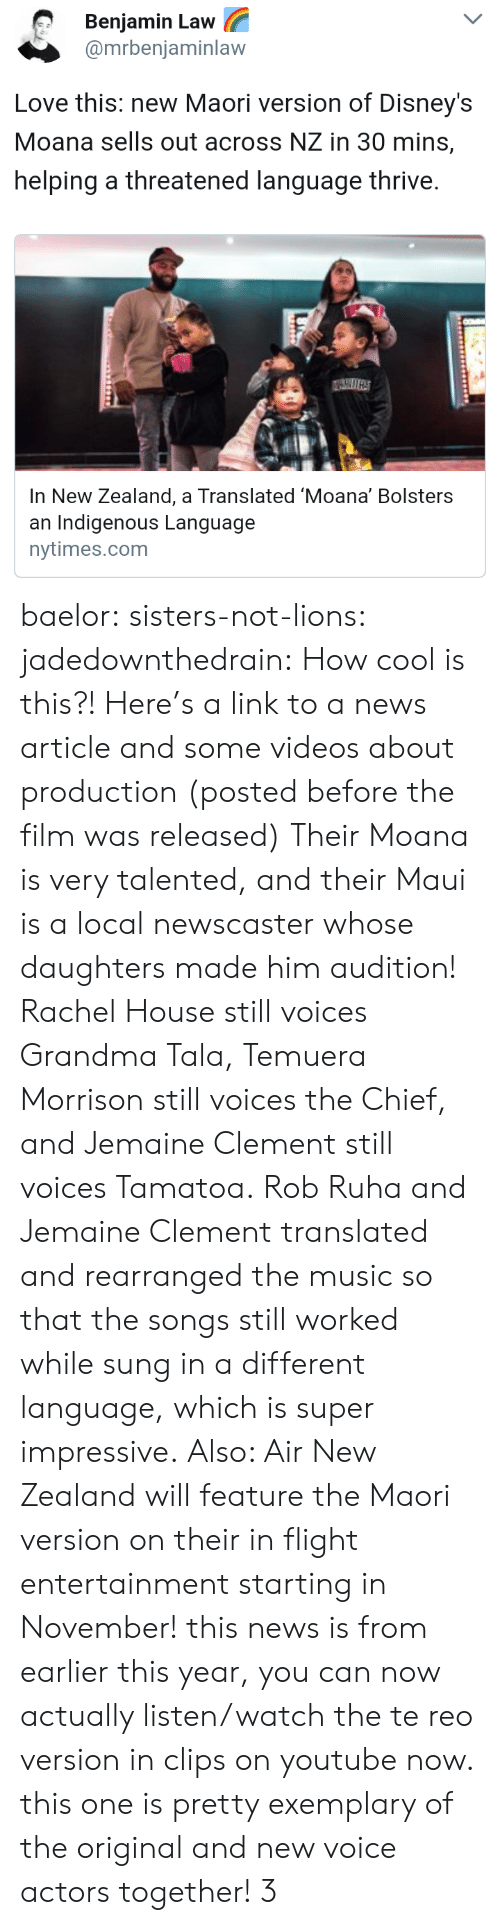 indigenous: Benjamin Law  @mrbeniaminlaw  Love this: new Maori version of Disney's  Moana sells out across NZ in 30 mins,  helping a threatened language thrive.  In New Zealand, a Translated 'Moana' Bolsters  an Indigenous Language  nytimes.com baelor: sisters-not-lions:  jadedownthedrain: How cool is this?! Here's a link to a news article and some videos about production (posted before the film was released) Their Moana is very talented, and their Maui is a local newscaster whose daughters made him audition! Rachel House still voices Grandma Tala, Temuera Morrison still voices the Chief, and Jemaine Clement still voices Tamatoa. Rob Ruha and Jemaine Clement translated and rearranged the music so that the songs still worked while sung in a different language, which is super impressive. Also: Air New Zealand will feature the Maori version on their in flight entertainment starting in November!  this news is from earlier this year, you can now actually listen/watch the te reo version in clips on youtube now. this one is pretty exemplary of the original and new voice actors together! 3